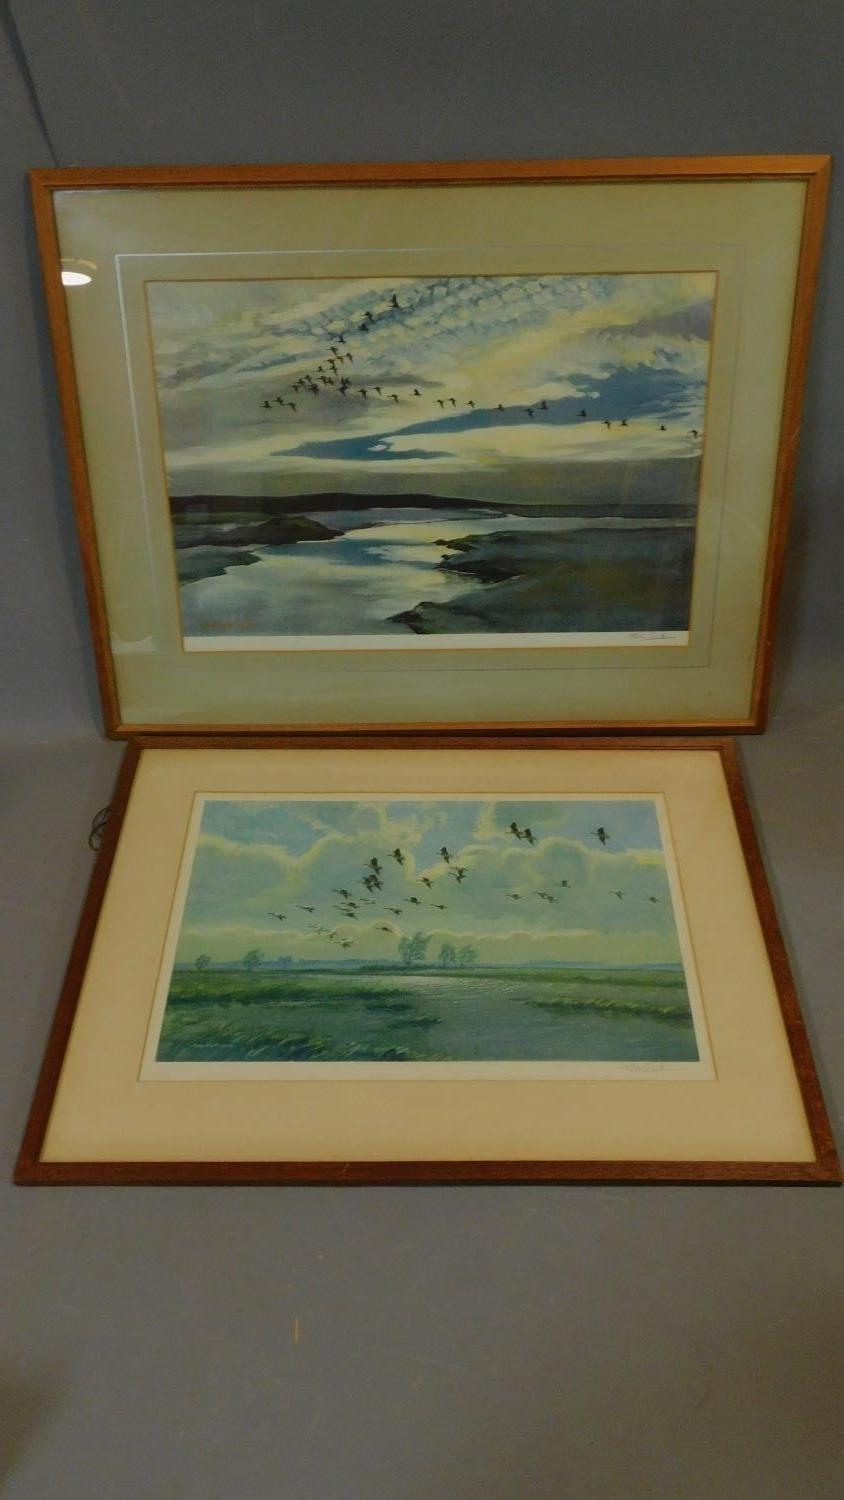 Two framed and glazed Peter Scott prints, each signed by Peter Scott. 83x66cm